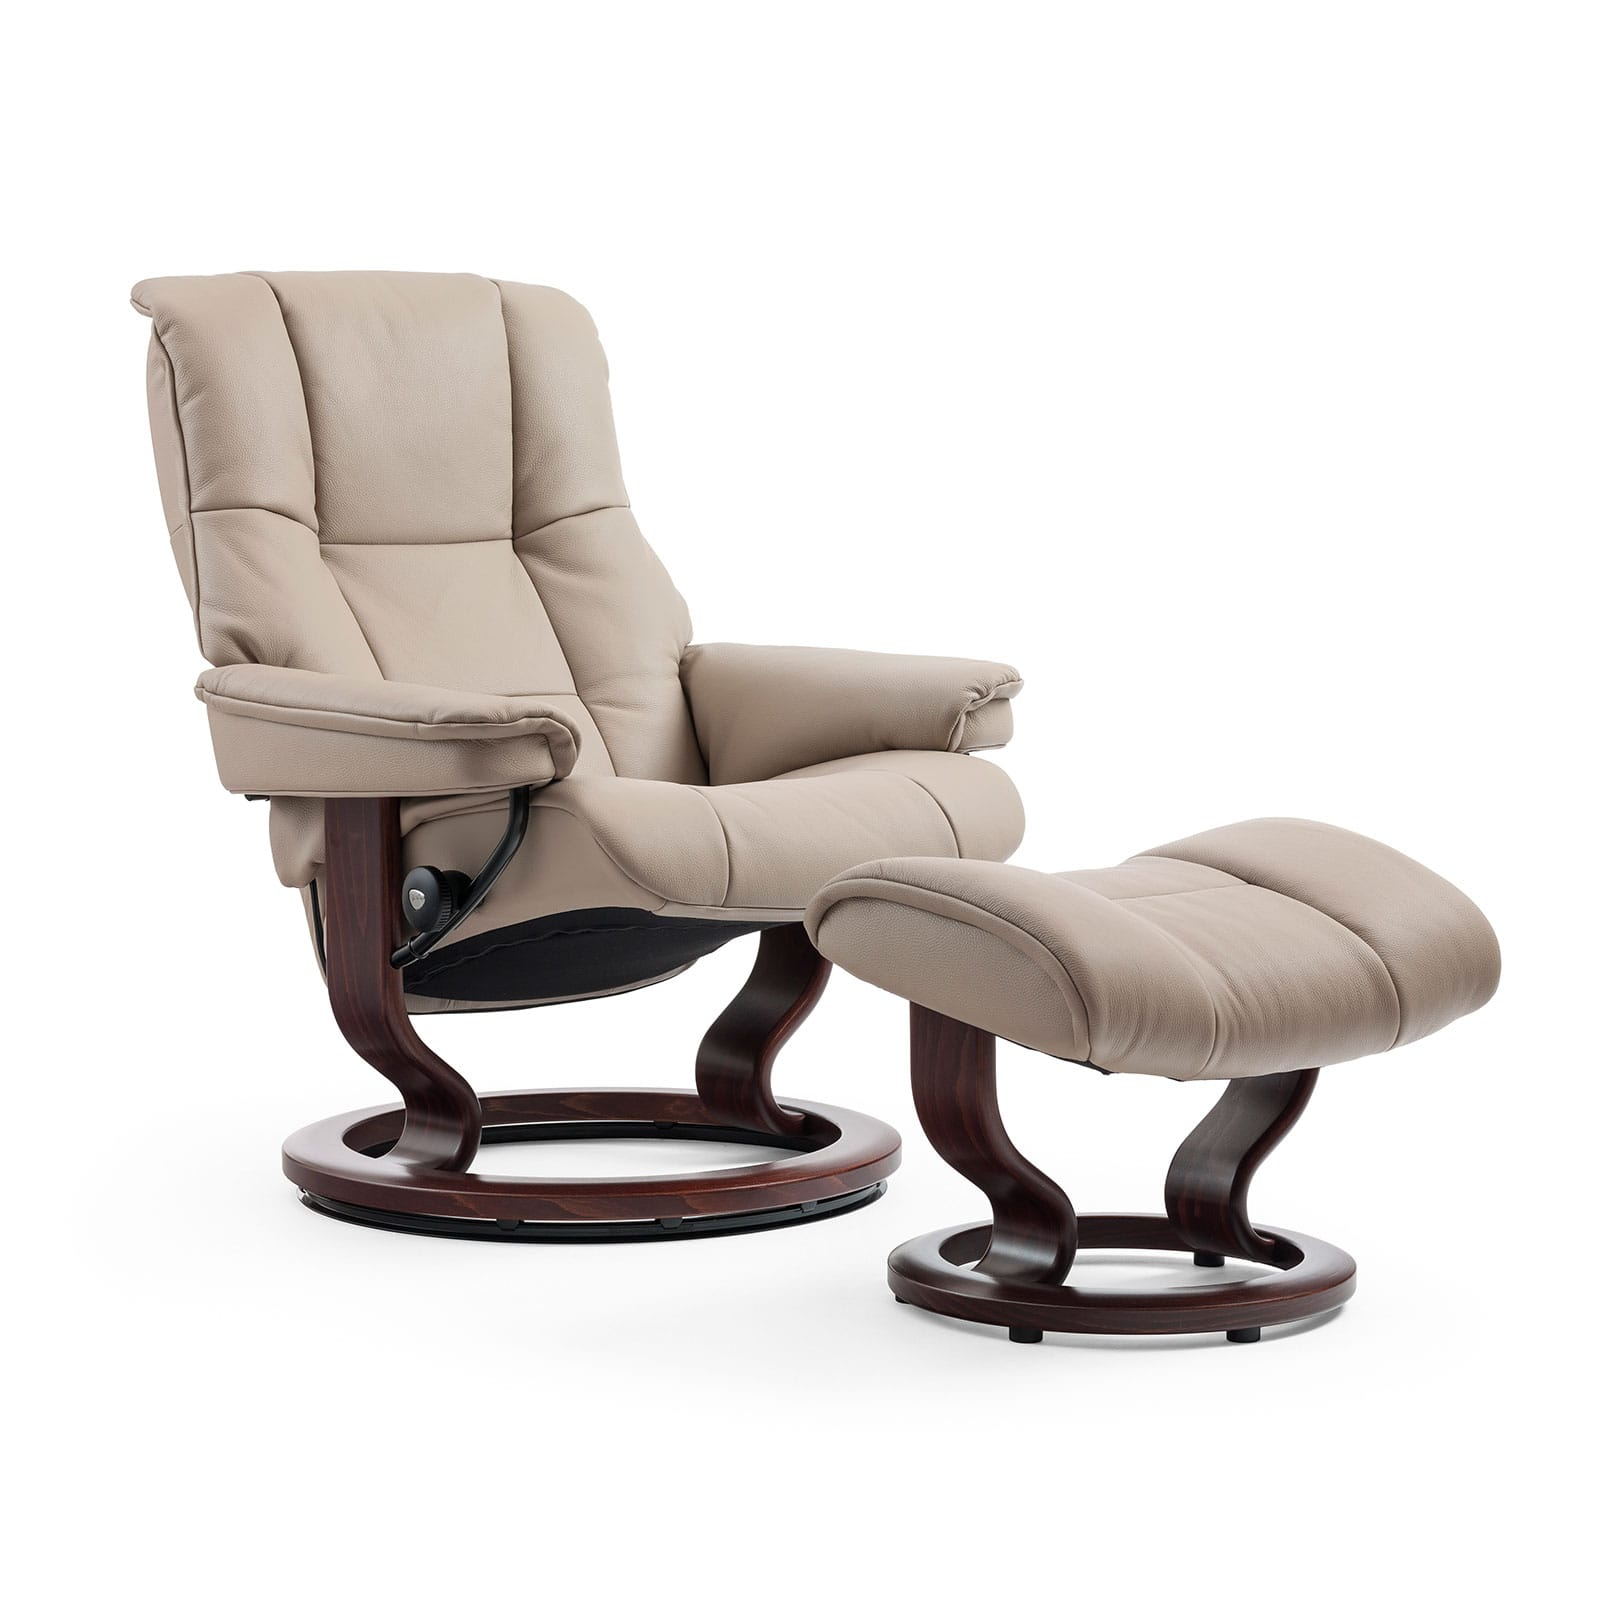 Stressless Sessel Mayfair Cori Beige Classic Braun Hocker